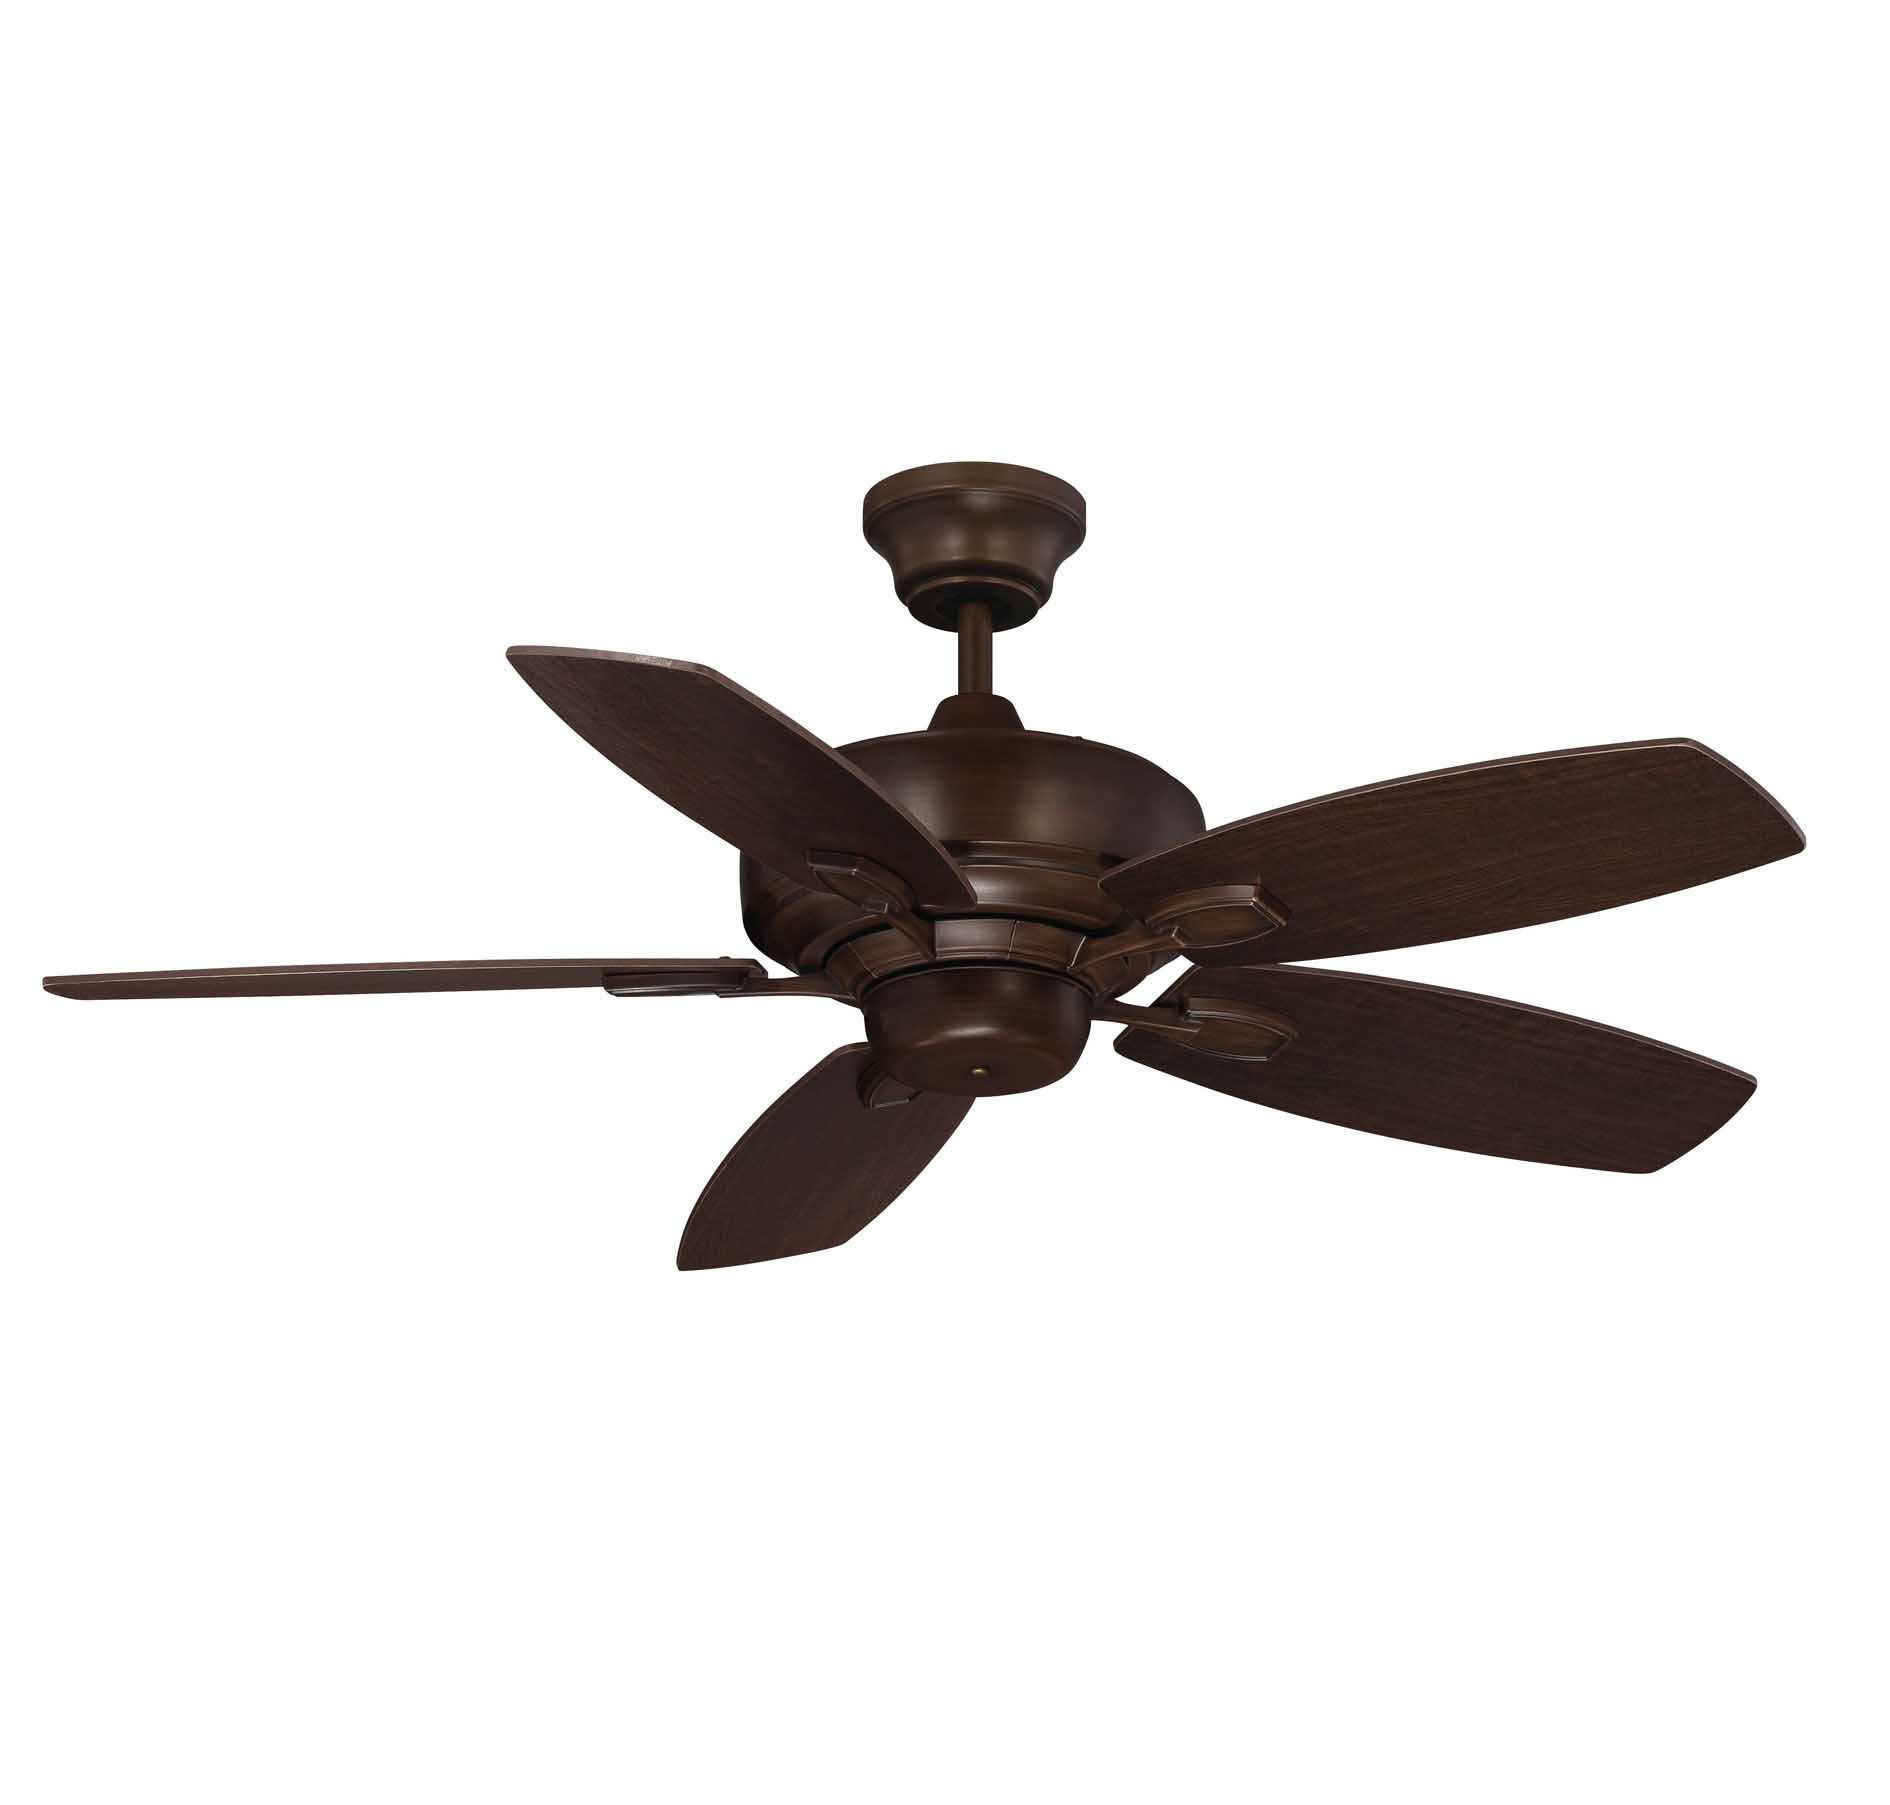 star ceiling fan photo - 6